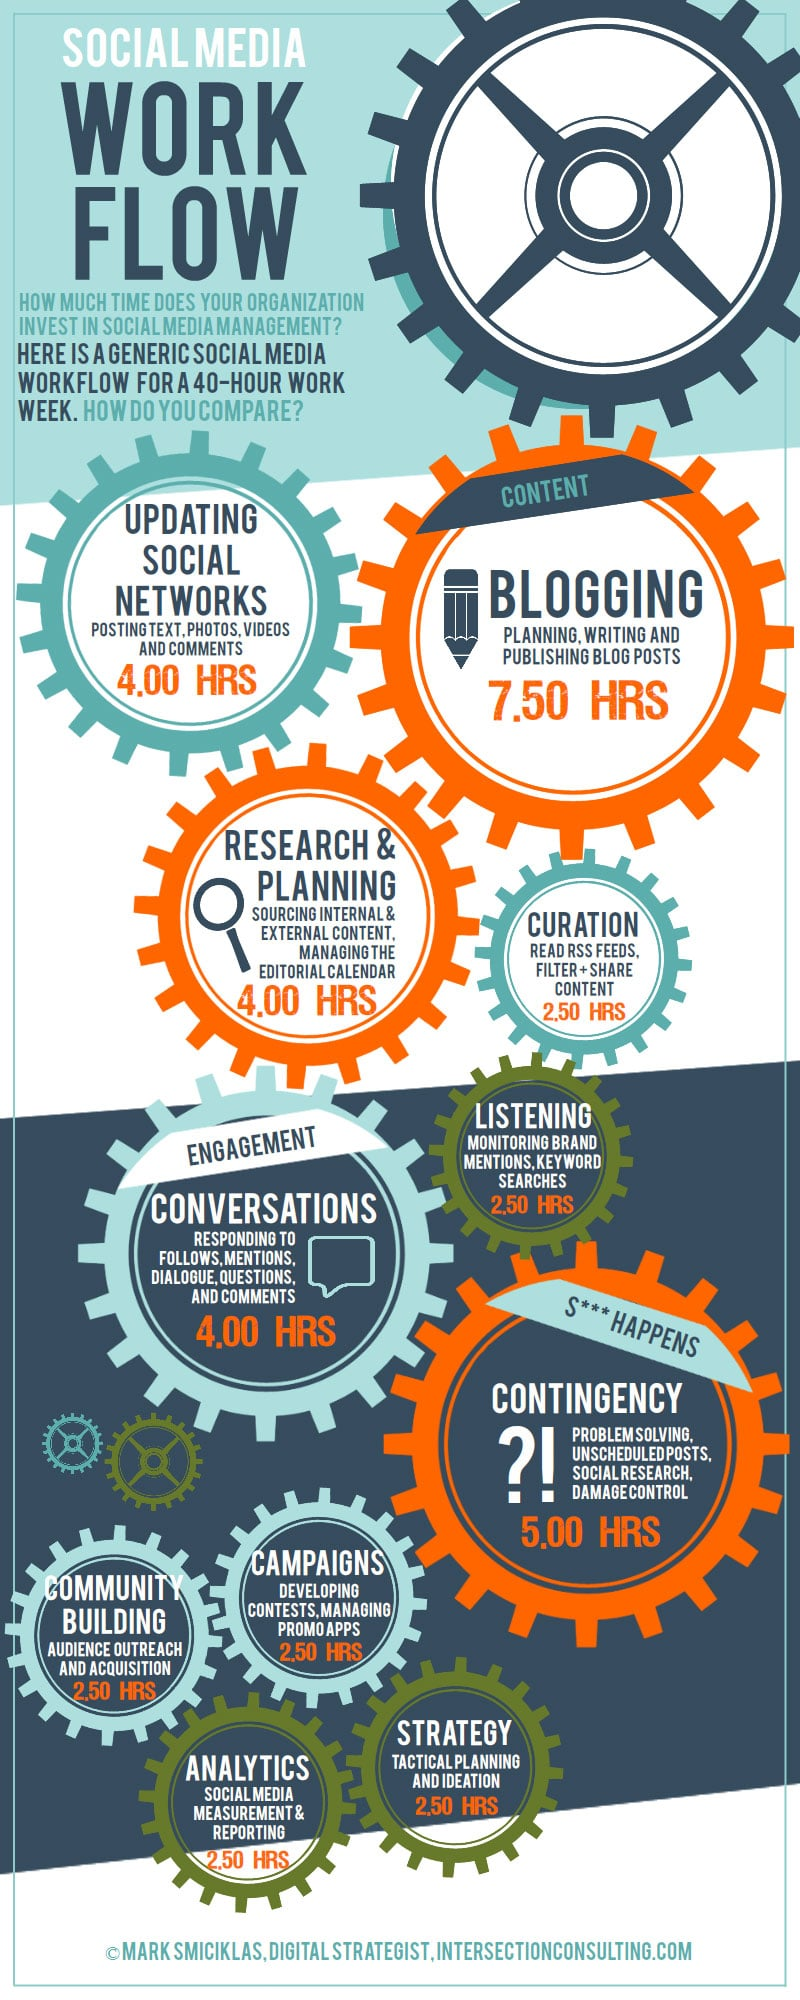 Social Media Manager Workweek Infographic